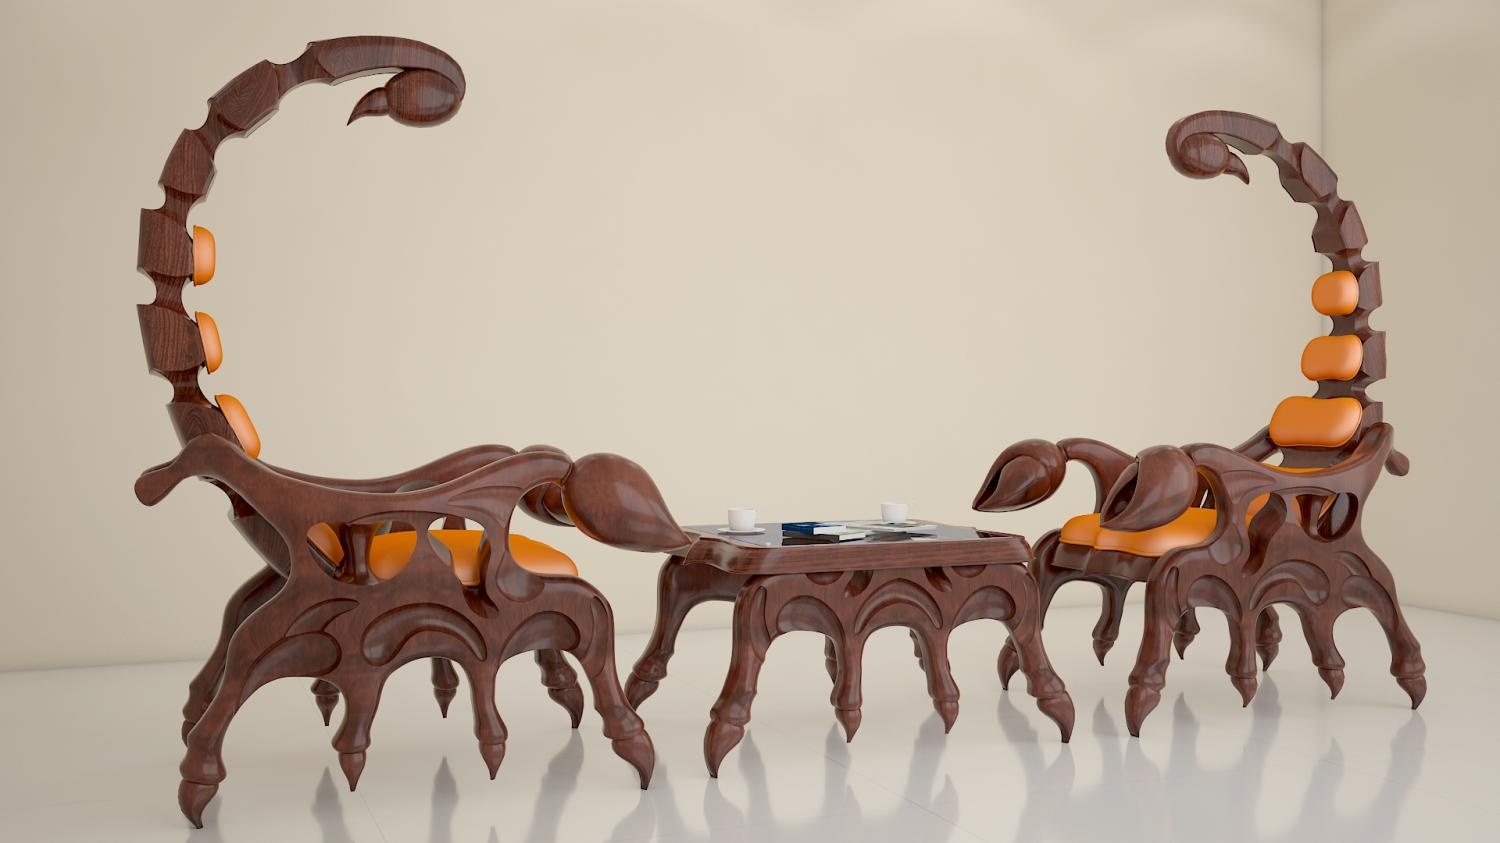 Scorpion Chair - Giant evil villain chair